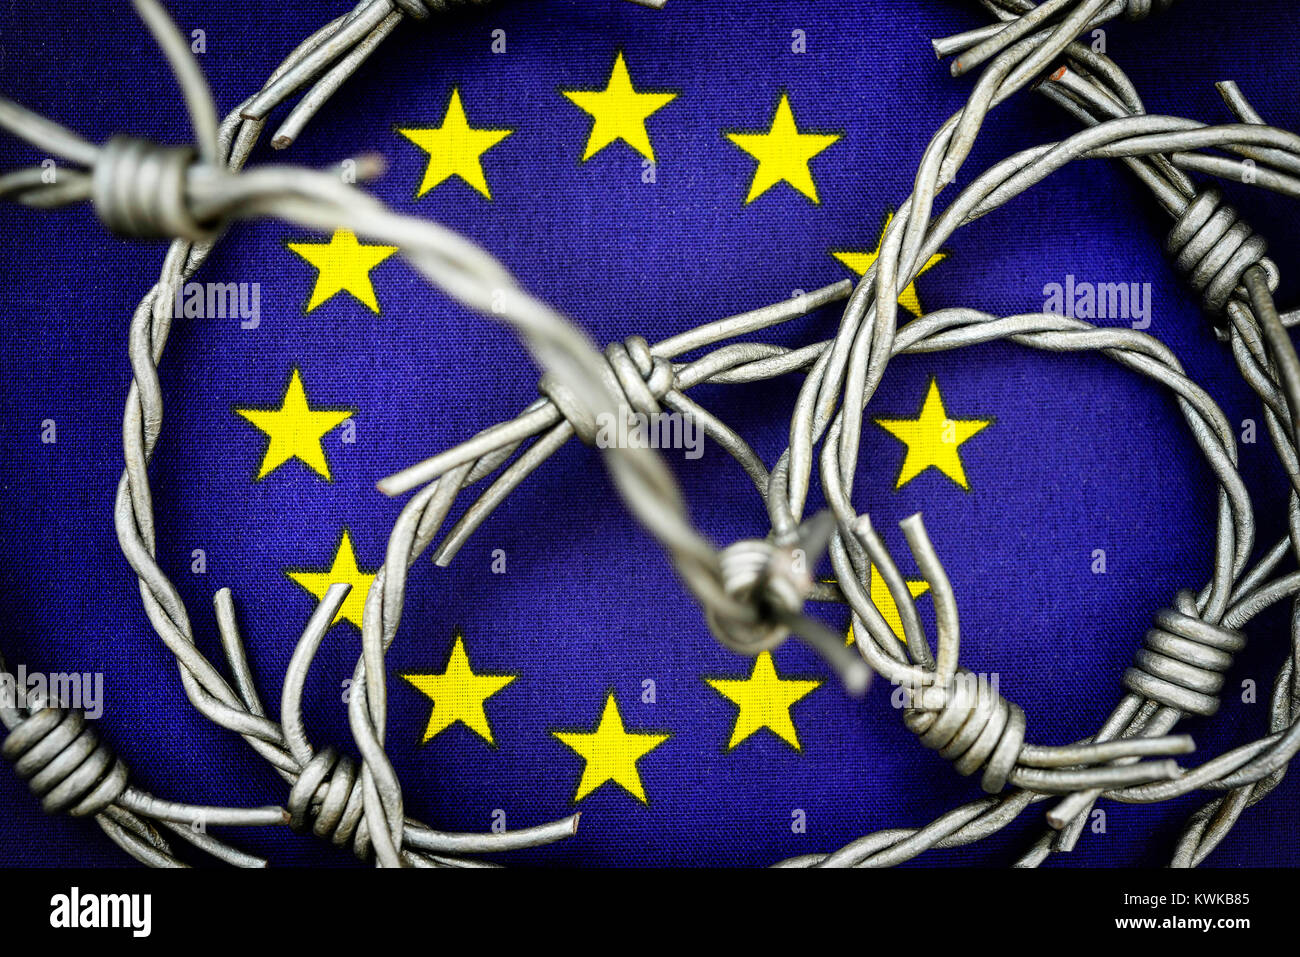 Barbed wire on EU flag, symbolic photo refugee's stream to Europe, Stacheldraht auf EU-Fahne, Symbolfoto Fl?chtlingsstrom - Stock Image